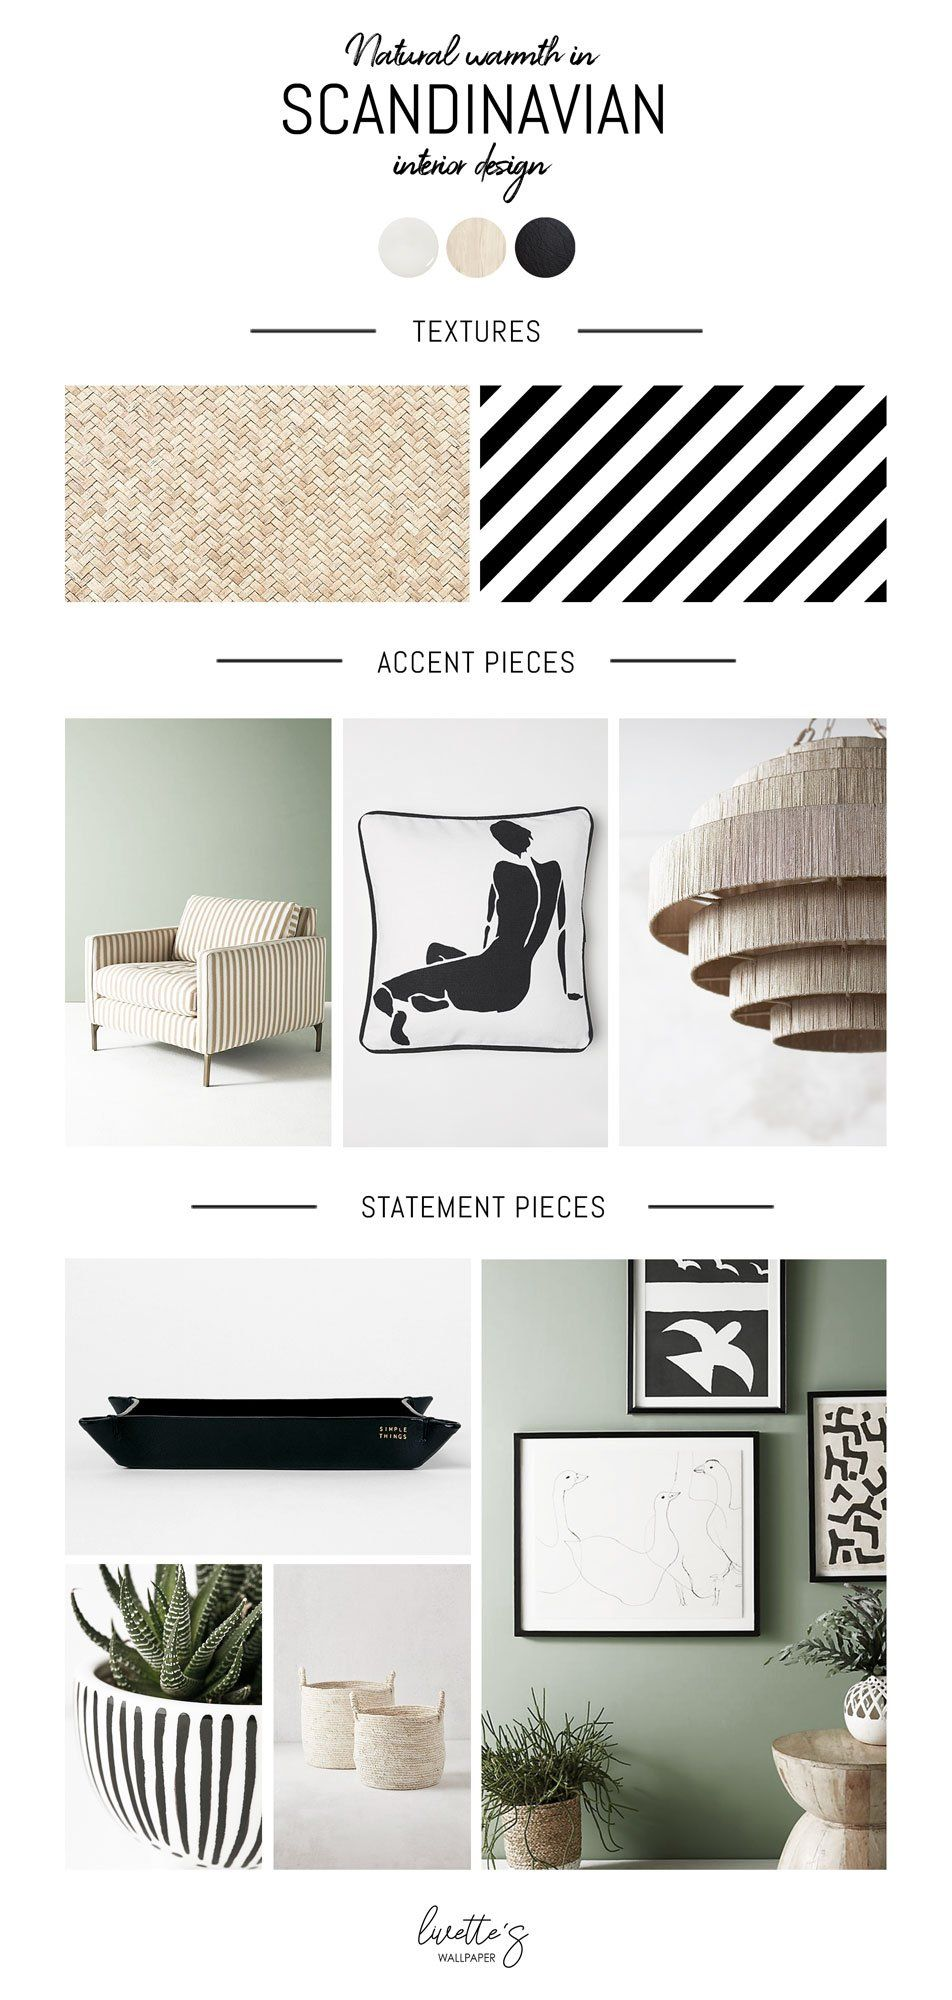 Natural warmth in Scandinavian interior design - Mood board Monday